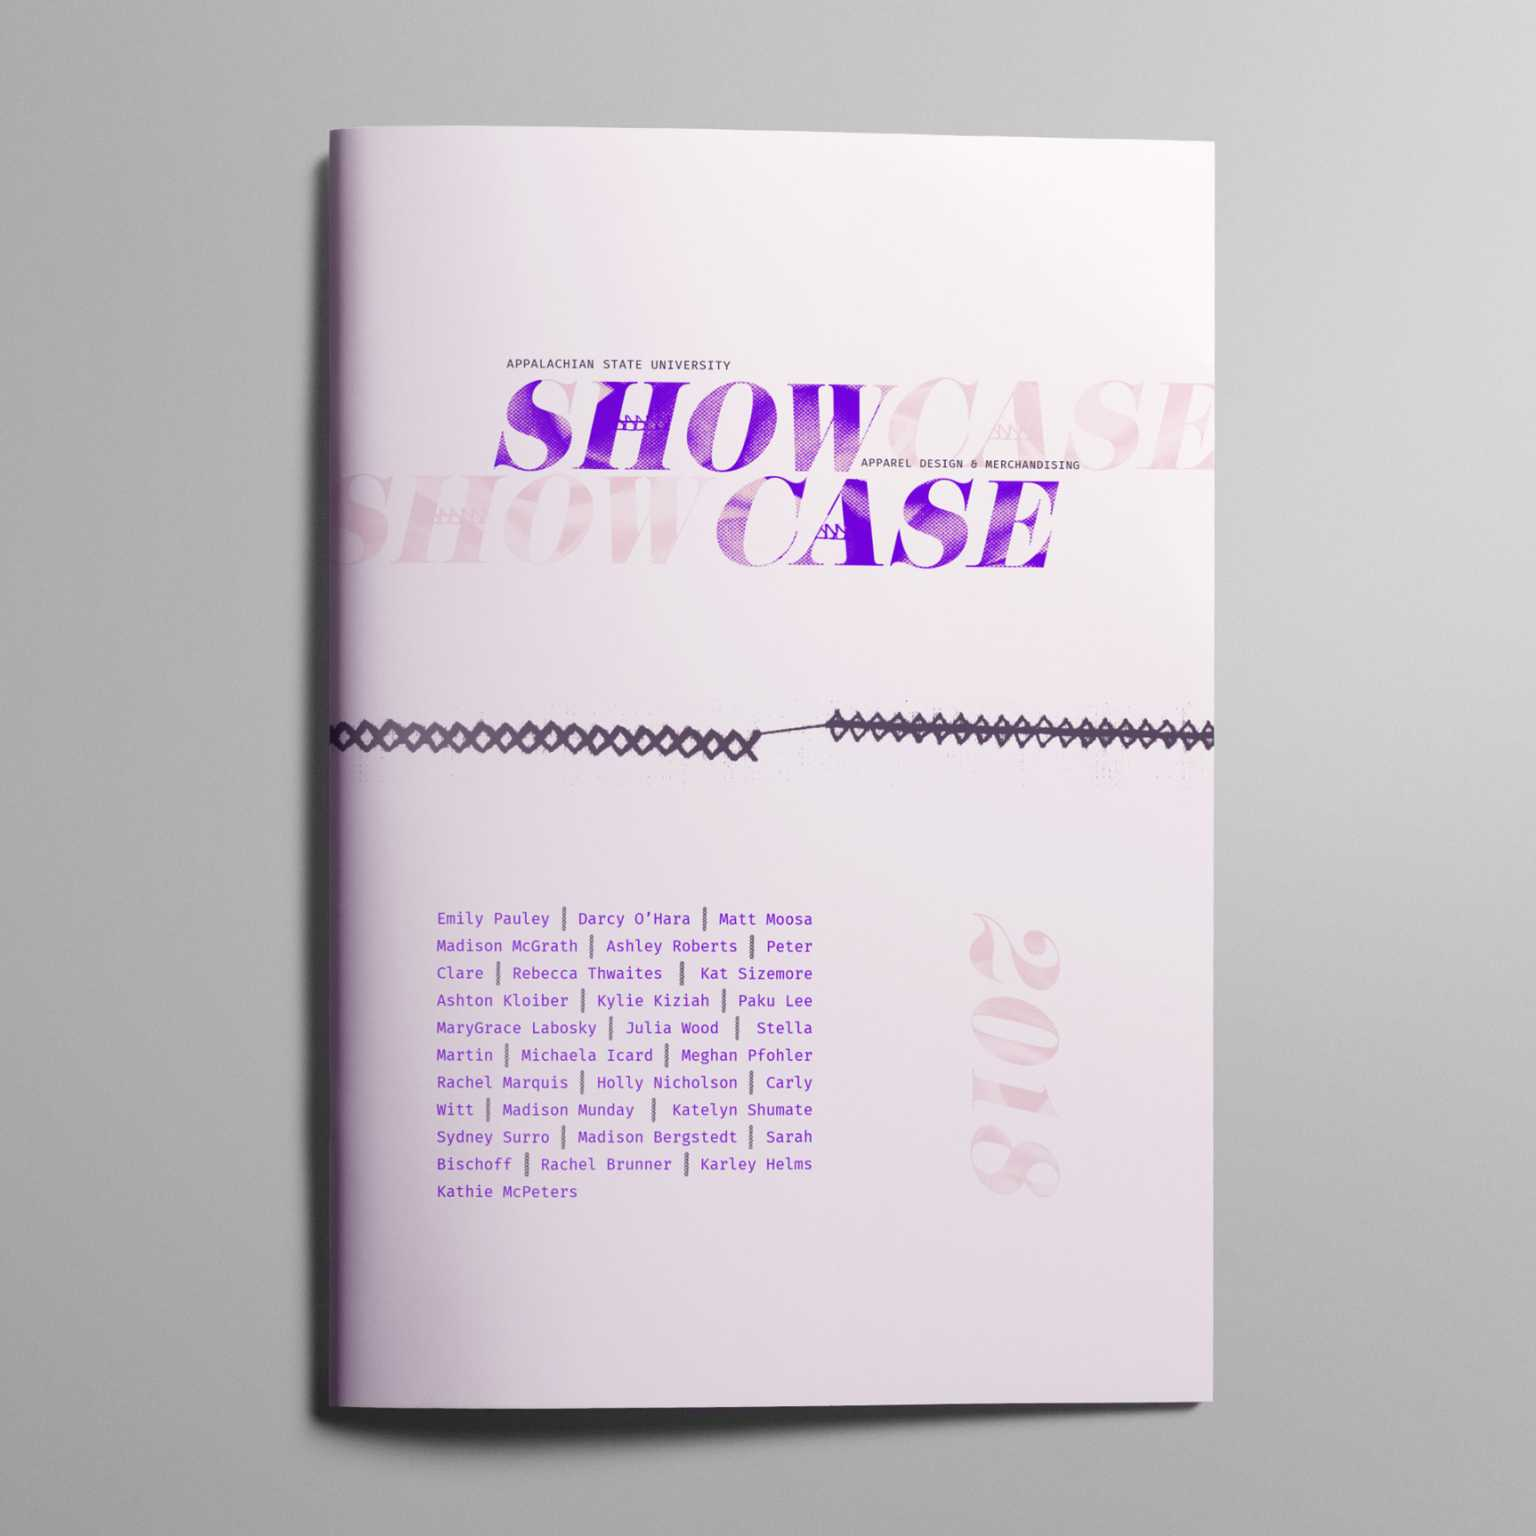 Program Cover for Showcase, the Apparel Design and Merchandising Program's annual fashion show